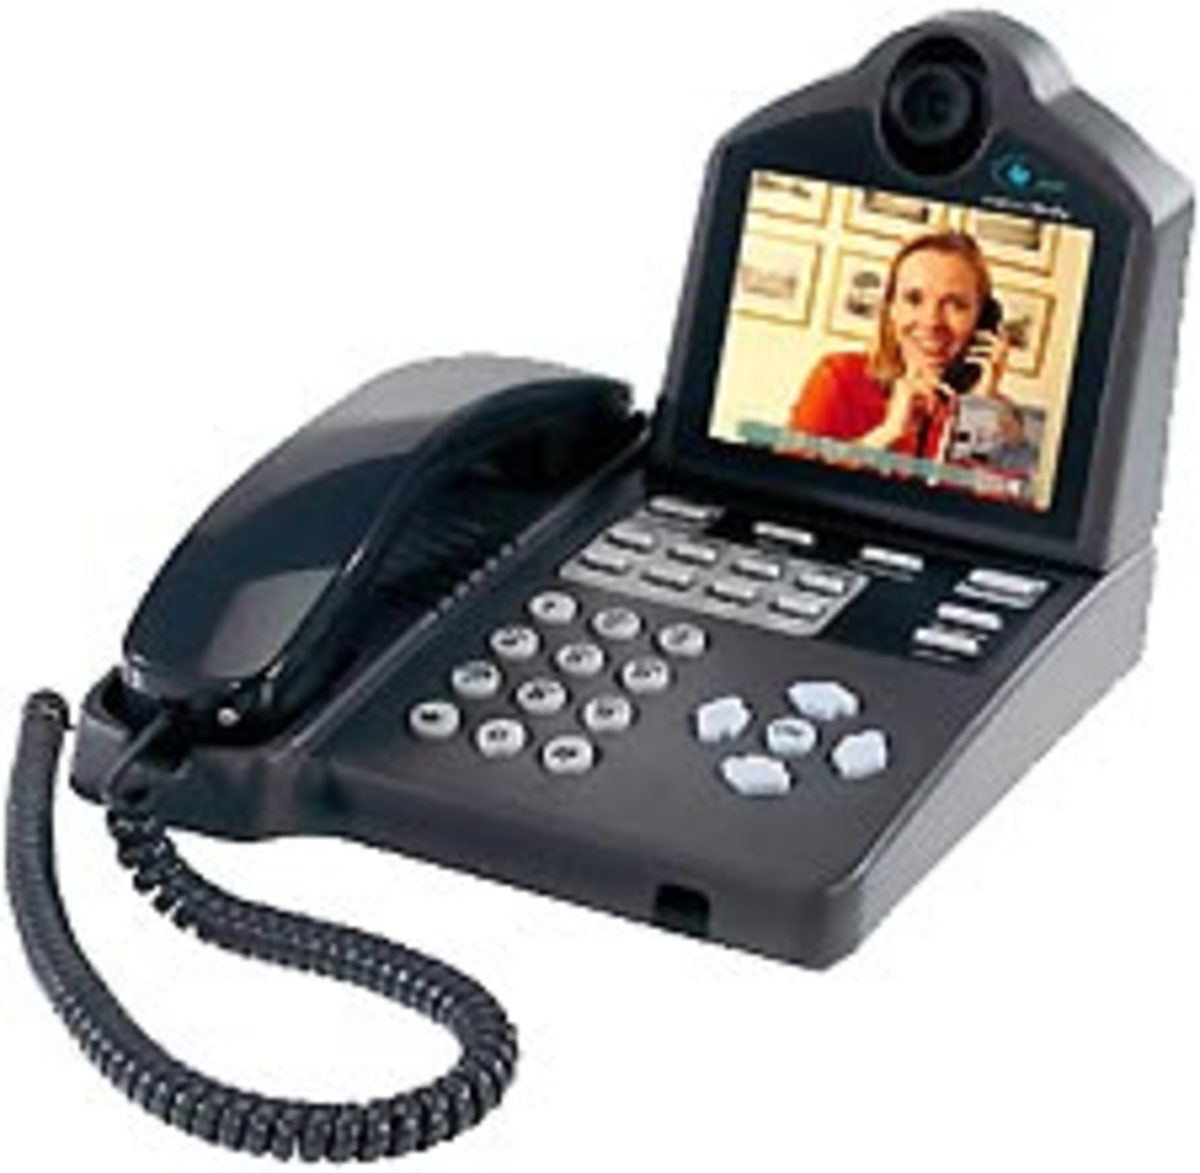 MM225 ISDN Video Conferencing phone. If you are calling a group conferecing system, you can remote control a third party camera from the keypad of your phone.  You can attach a document camera to the phone; connect our PC for T.120 data sharing